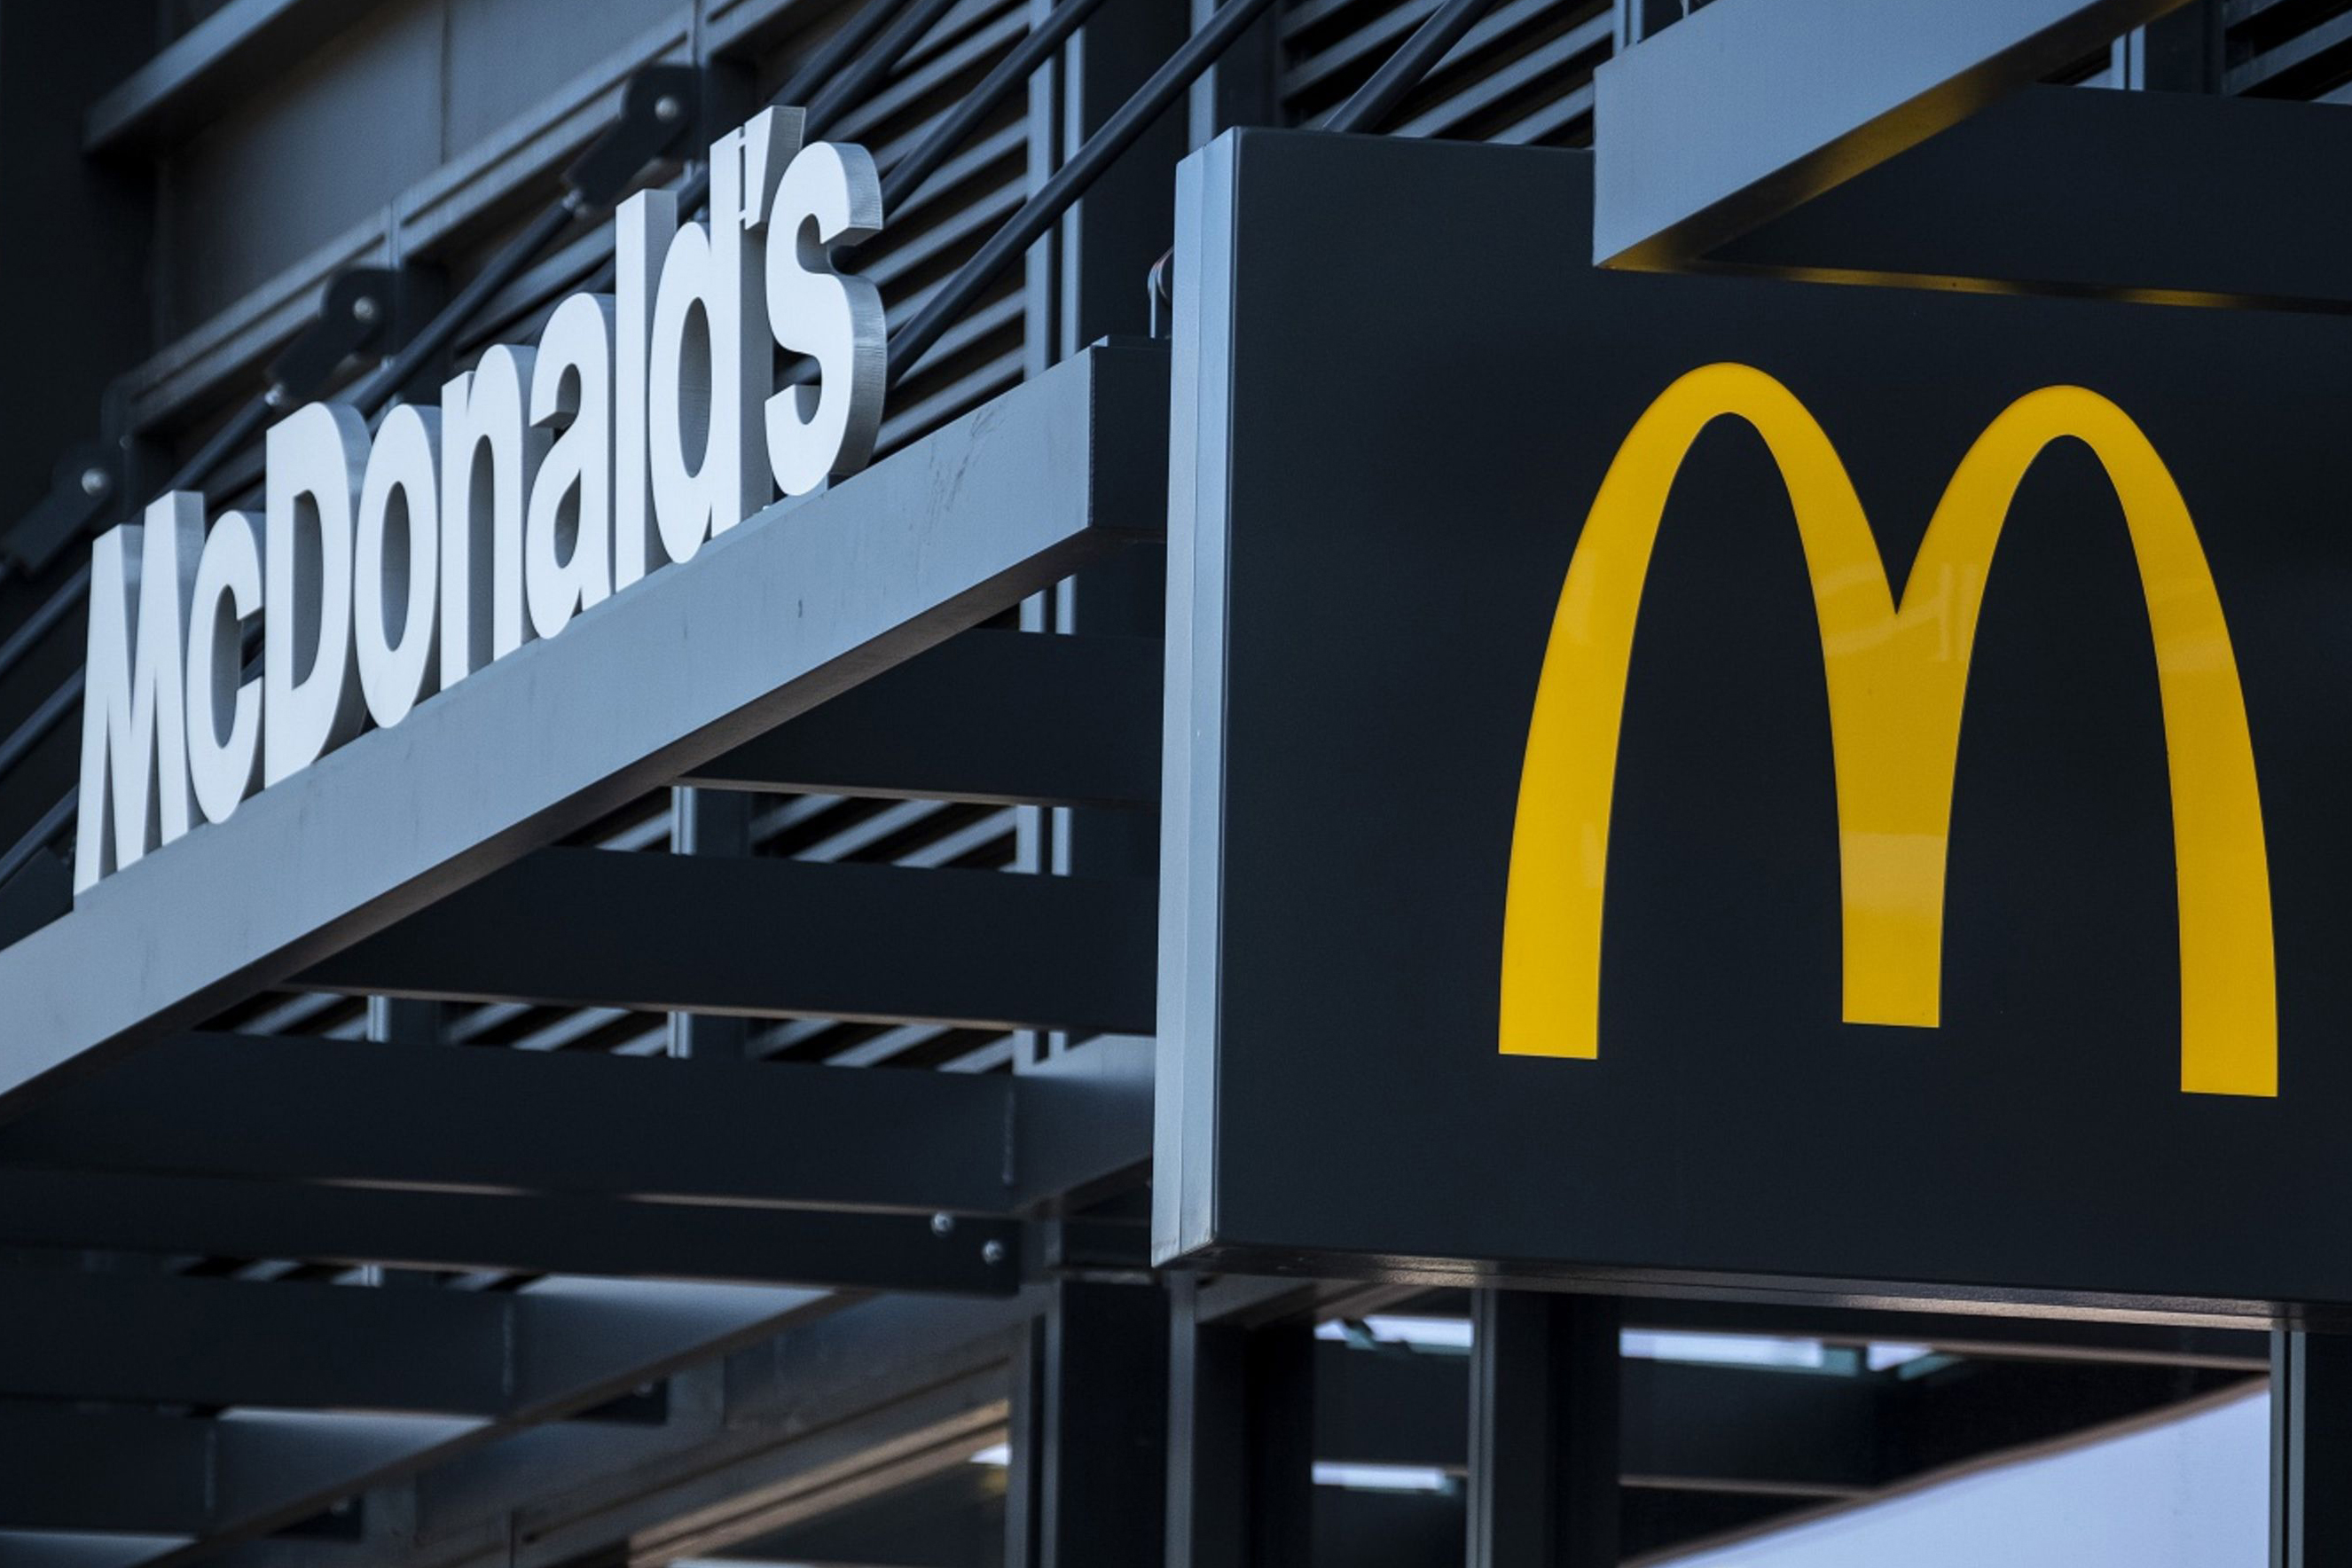 McDonald's fires CEO Steve Easterbrook after employee relationship revealed, replaces him with Chris Kempczinski